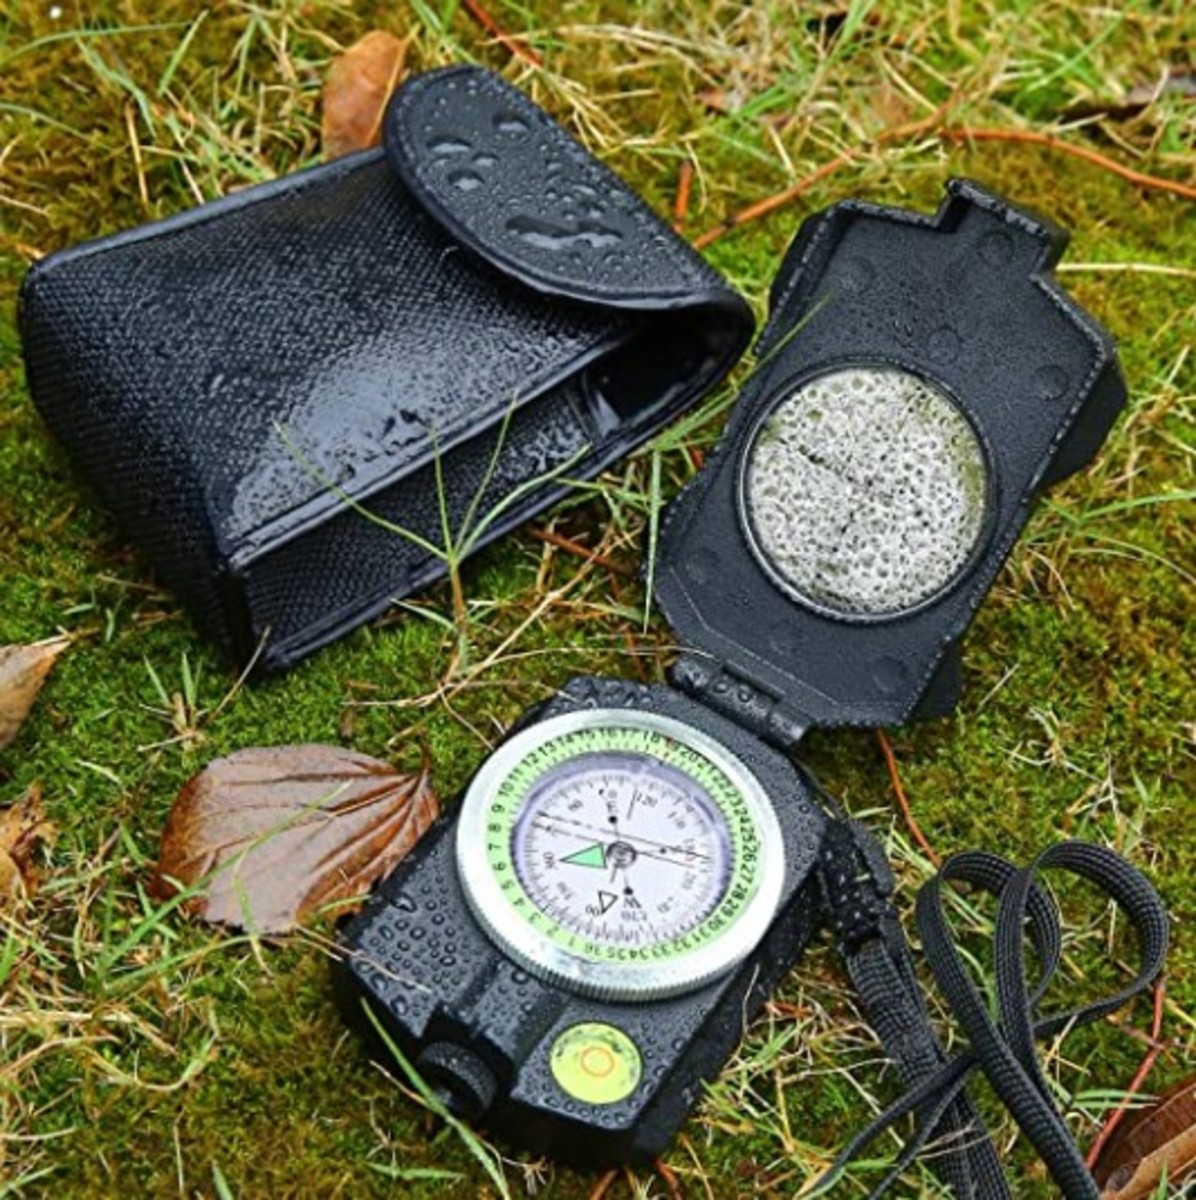 Sportneer Lensatic Military Compass with Clinometer, Waterproof Multifunctional Survival Compasses with Distance Calculator